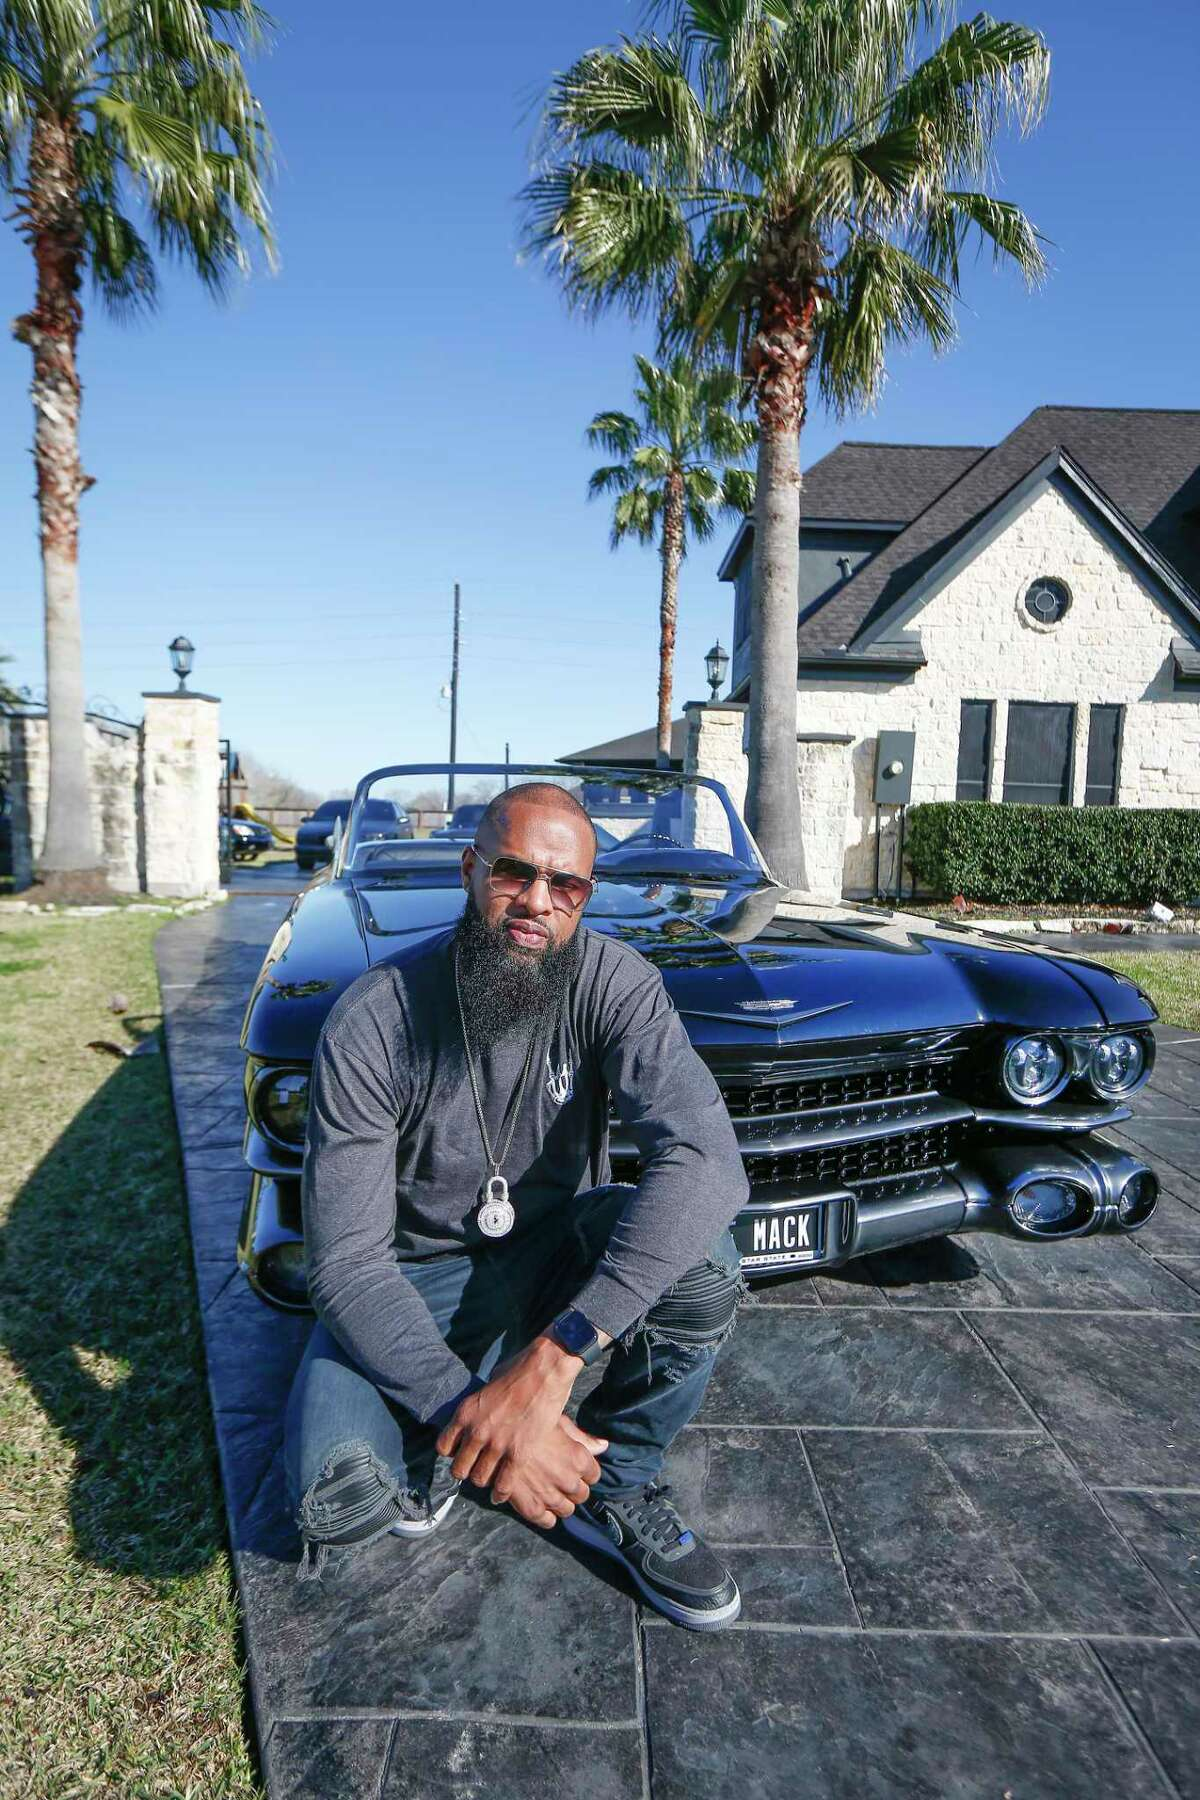 Rapper Slim Thug has a rare car collection, his favorite car is the called